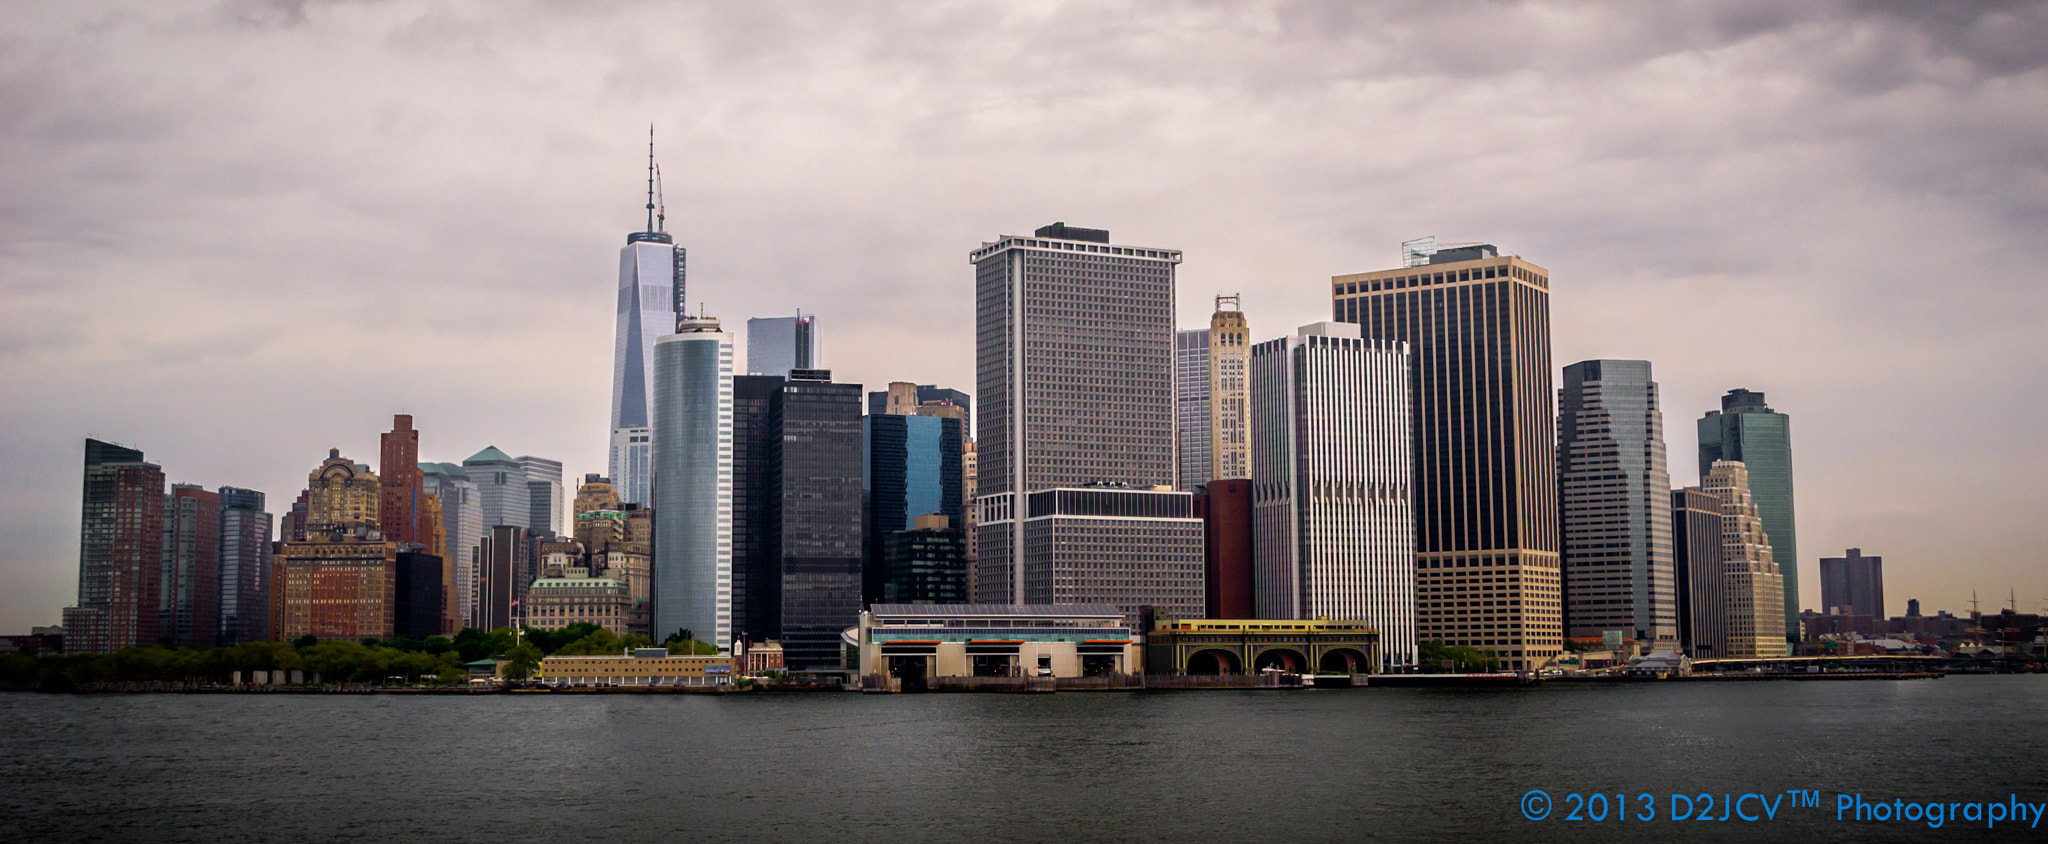 Photograph NYC Skyline 1 by Daniel J. Cummuta on 500px